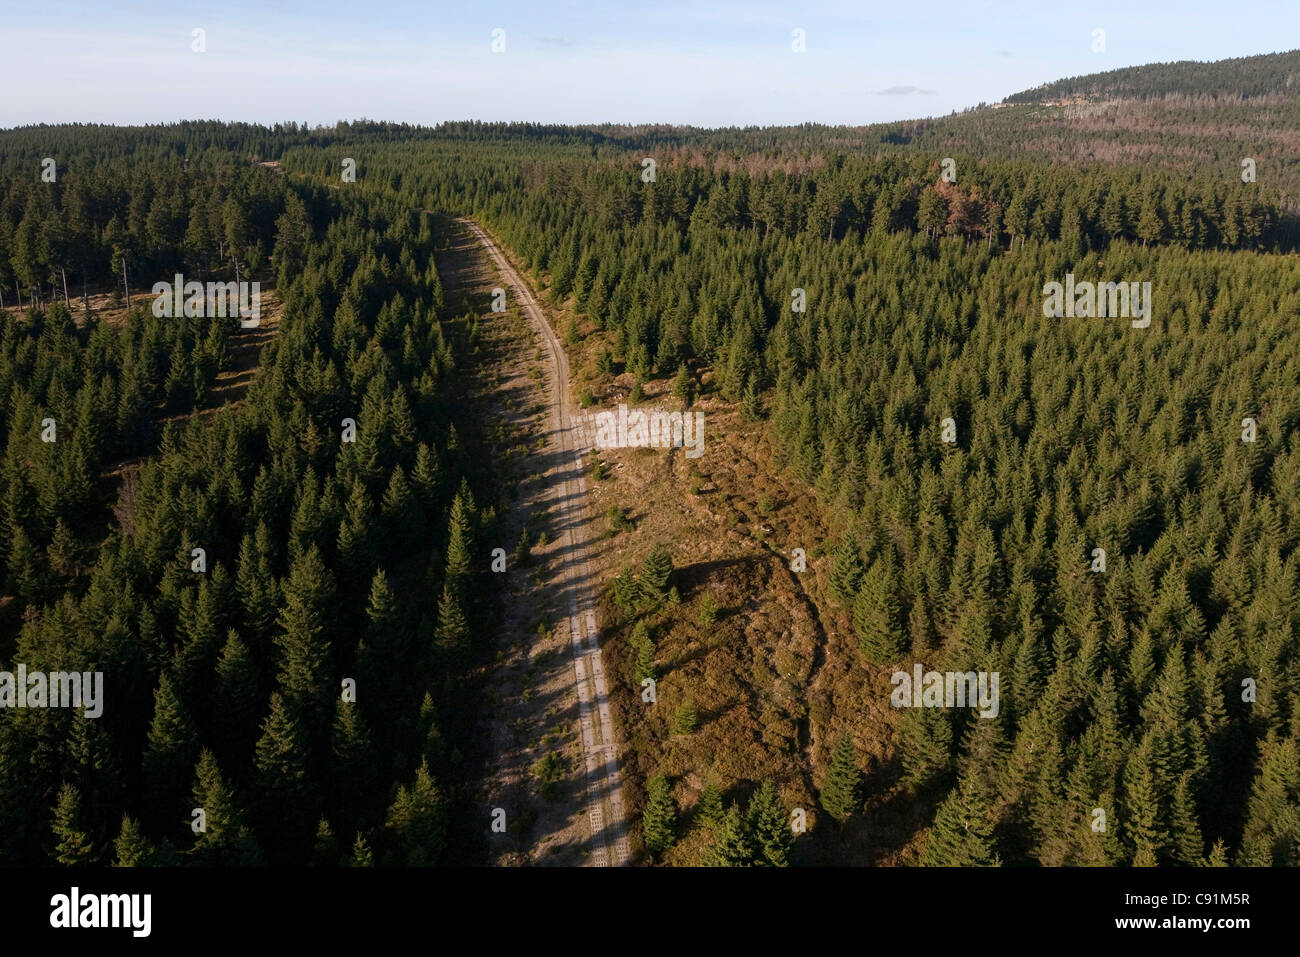 Aerial of former inner German border near Gartow in Wendland, Lower Saxony, Germany - Stock Image